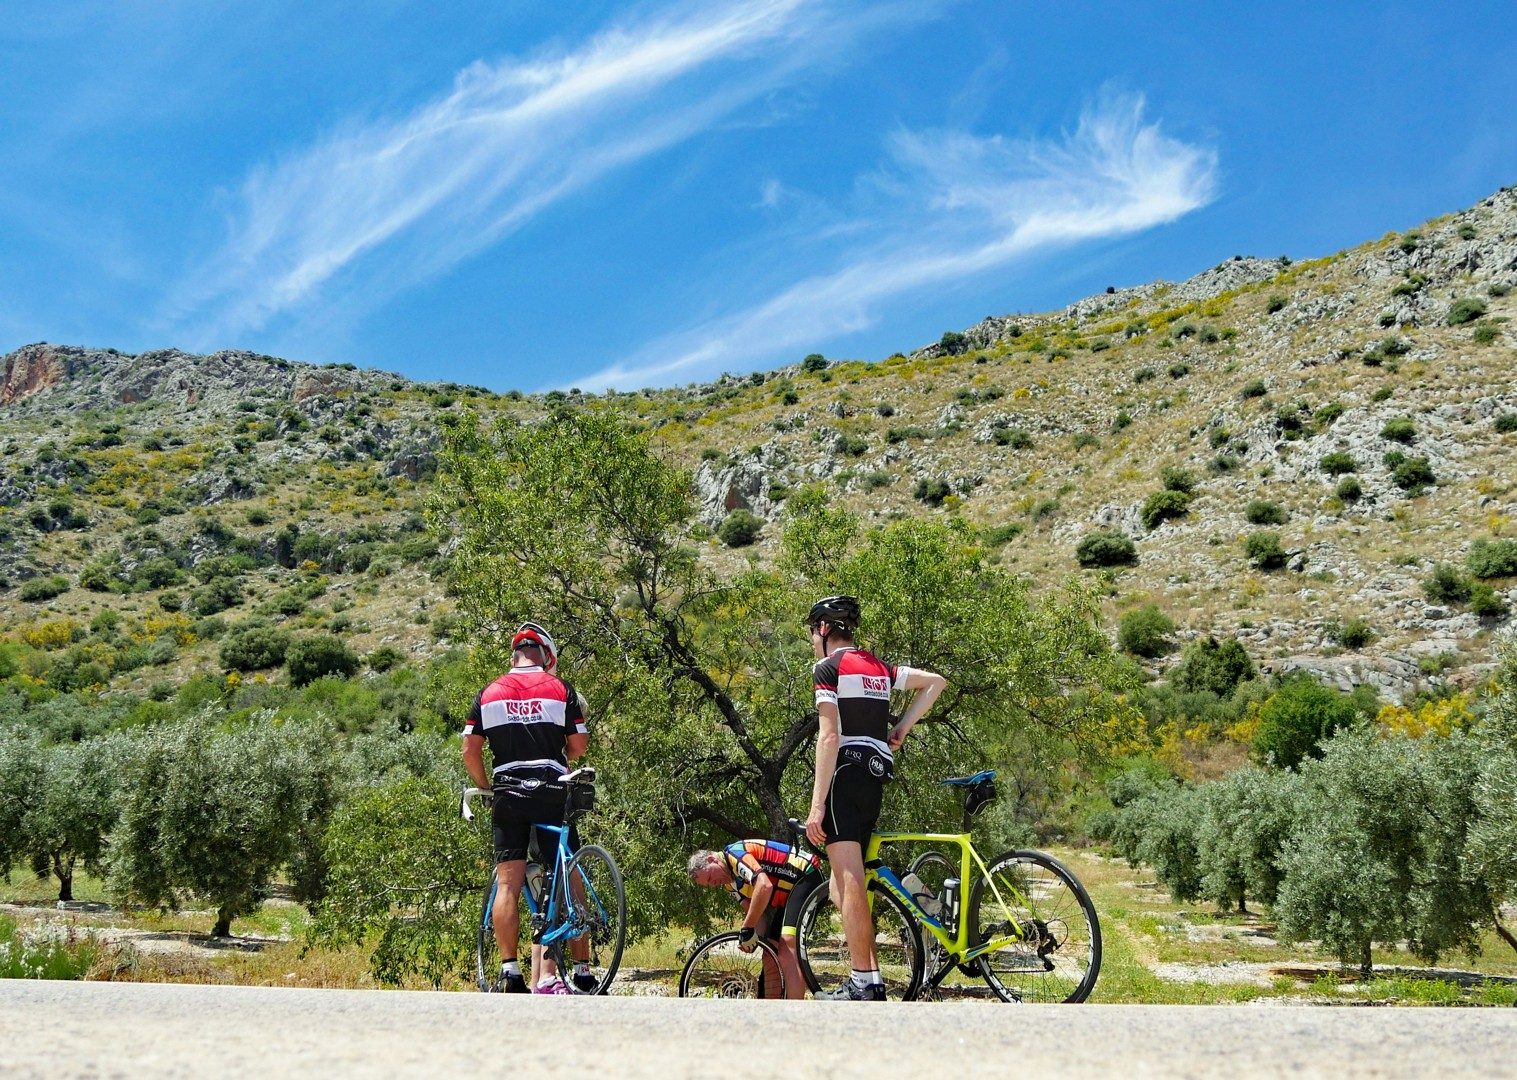 scenic-road-cycling-basque-country.jpg - Spain - Basque Country to Andalucia - North to South - 21 Day - Guided Road Cycling Holiday - Road Cycling